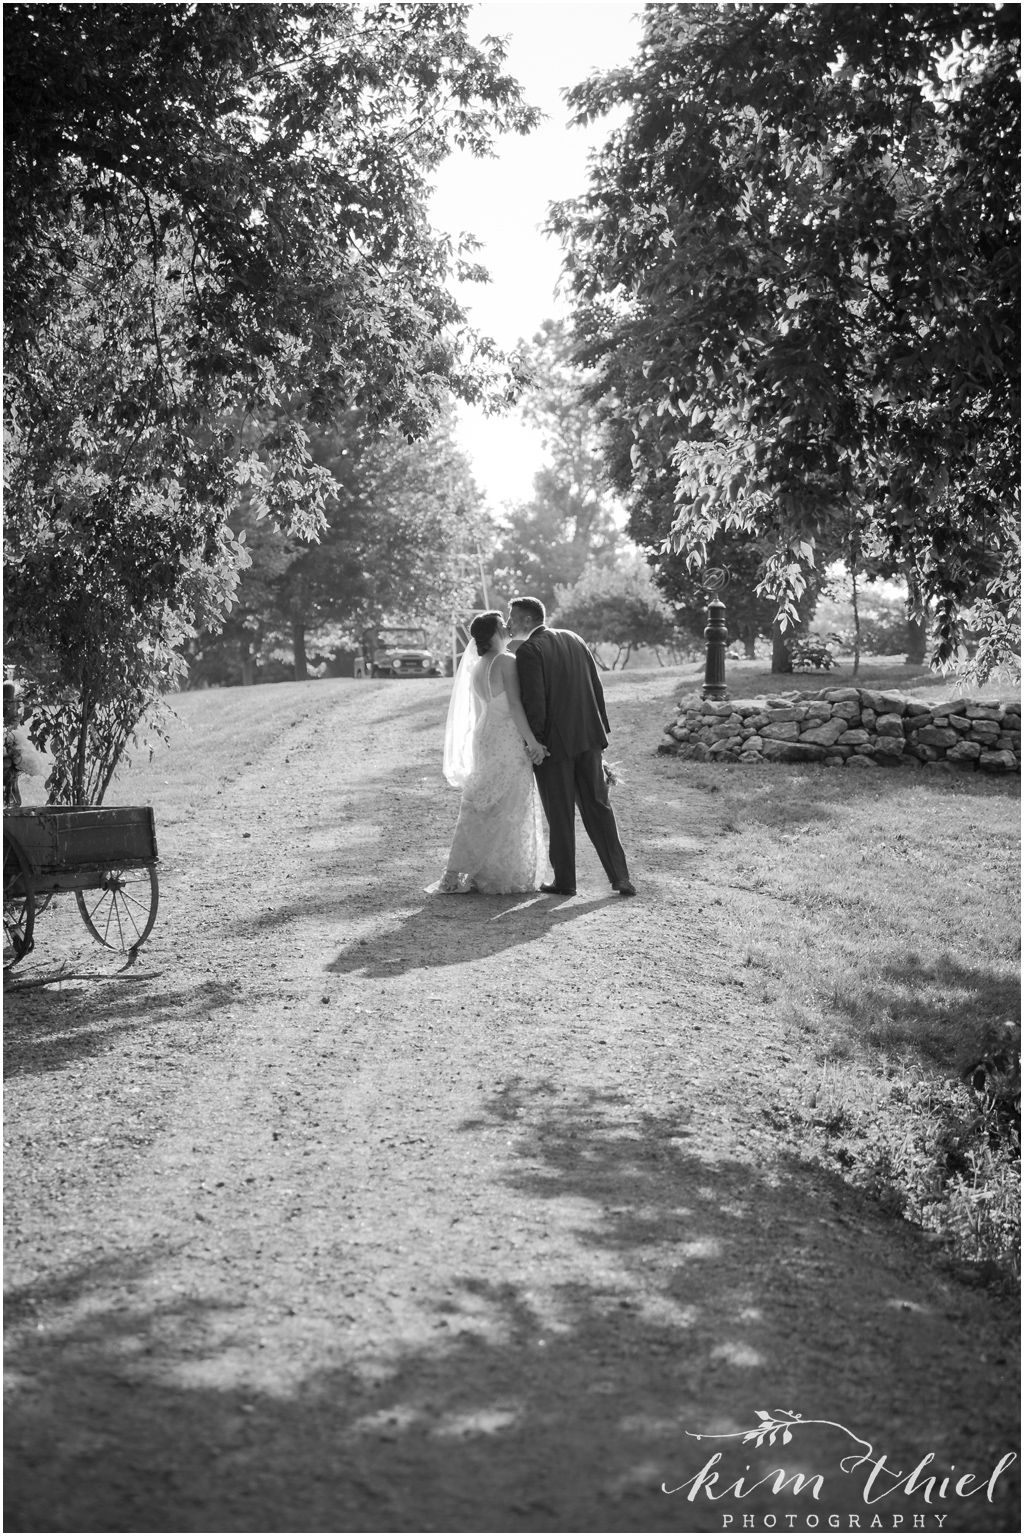 Kim-Thiel-Photography_Givens-Farm-Wedding-Hortonville-Wisconsin-27